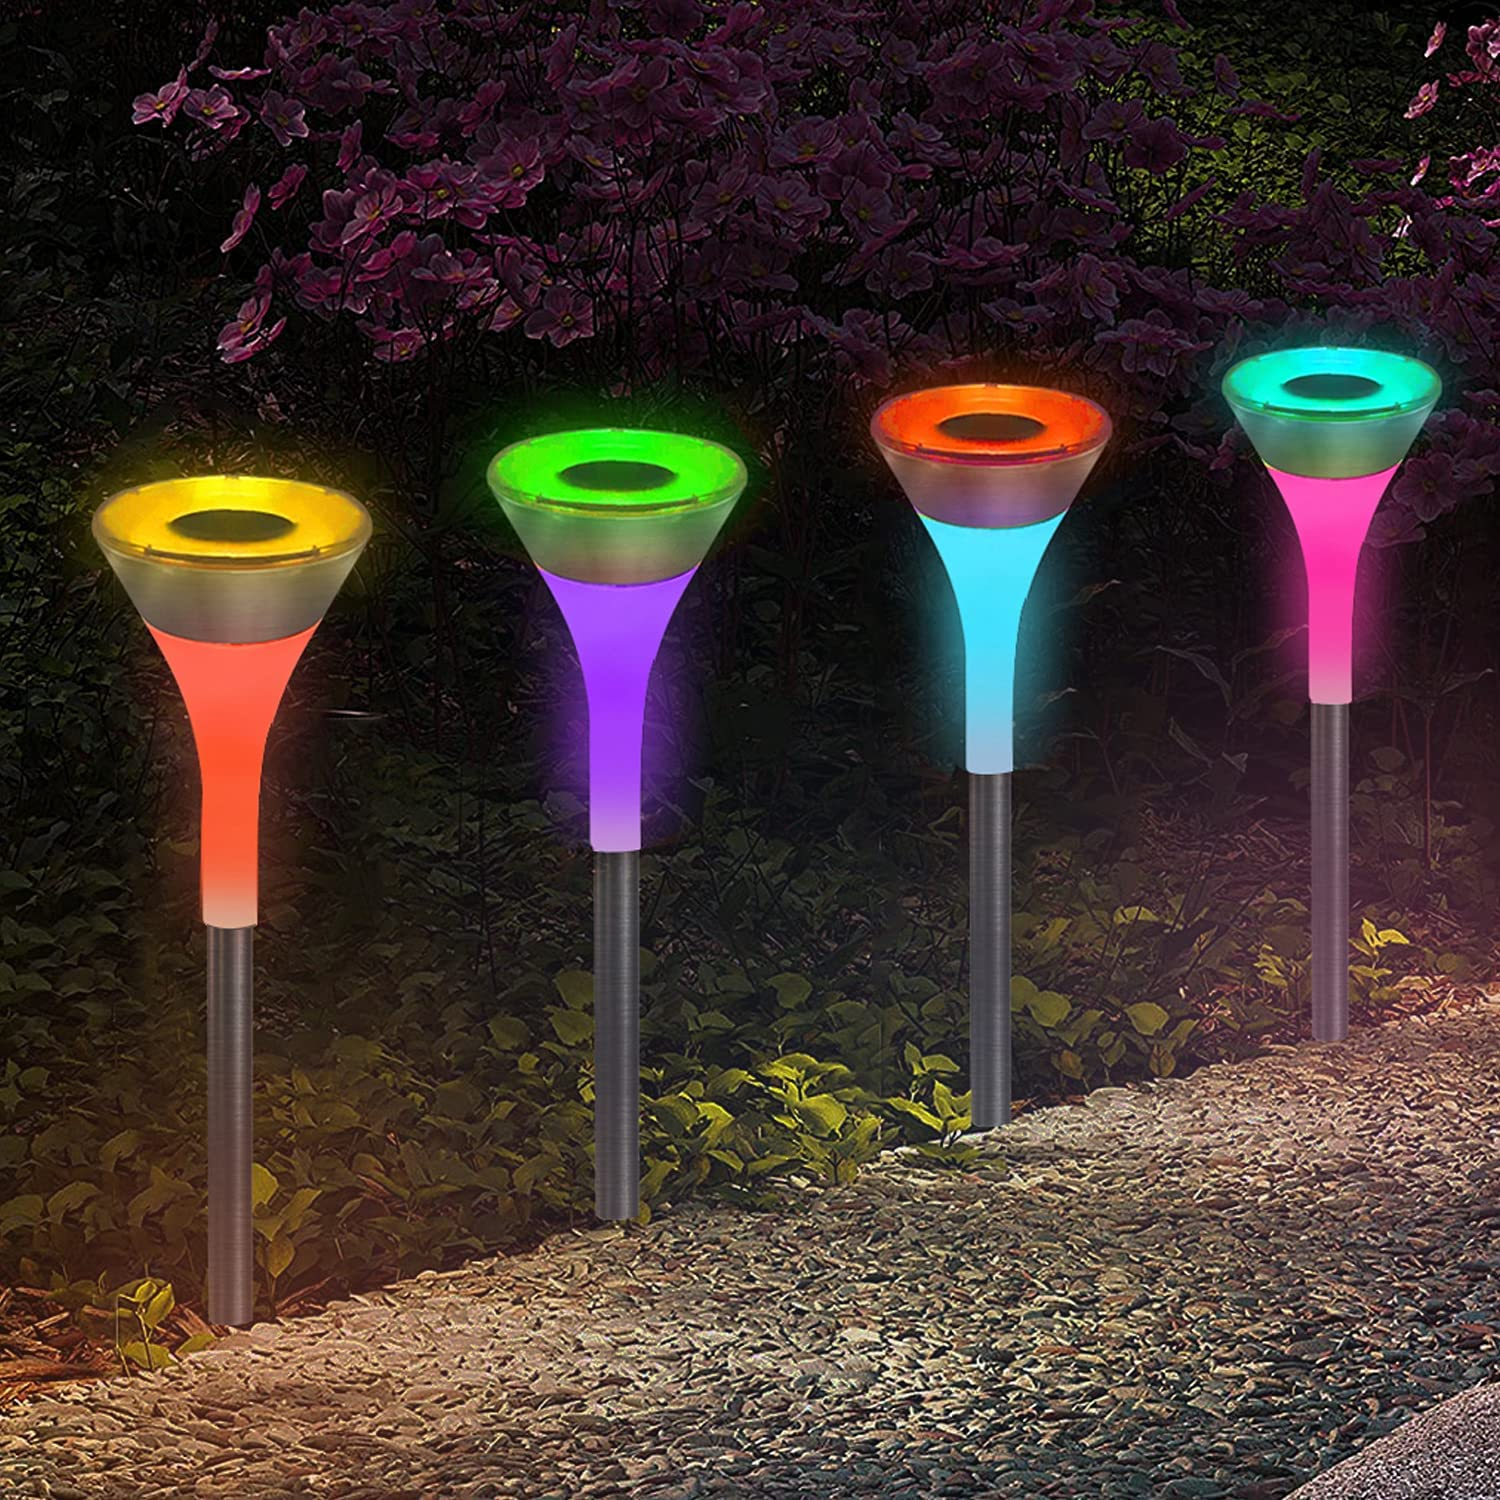 6 Pack Solar Pathway Lights Outdoor - Auto 7 Color Changing/White Solar Powered Lights, Waterproof Decorative LED Path Lights, Landscape Lighting for Garden, Patio, Driveway, Walkway